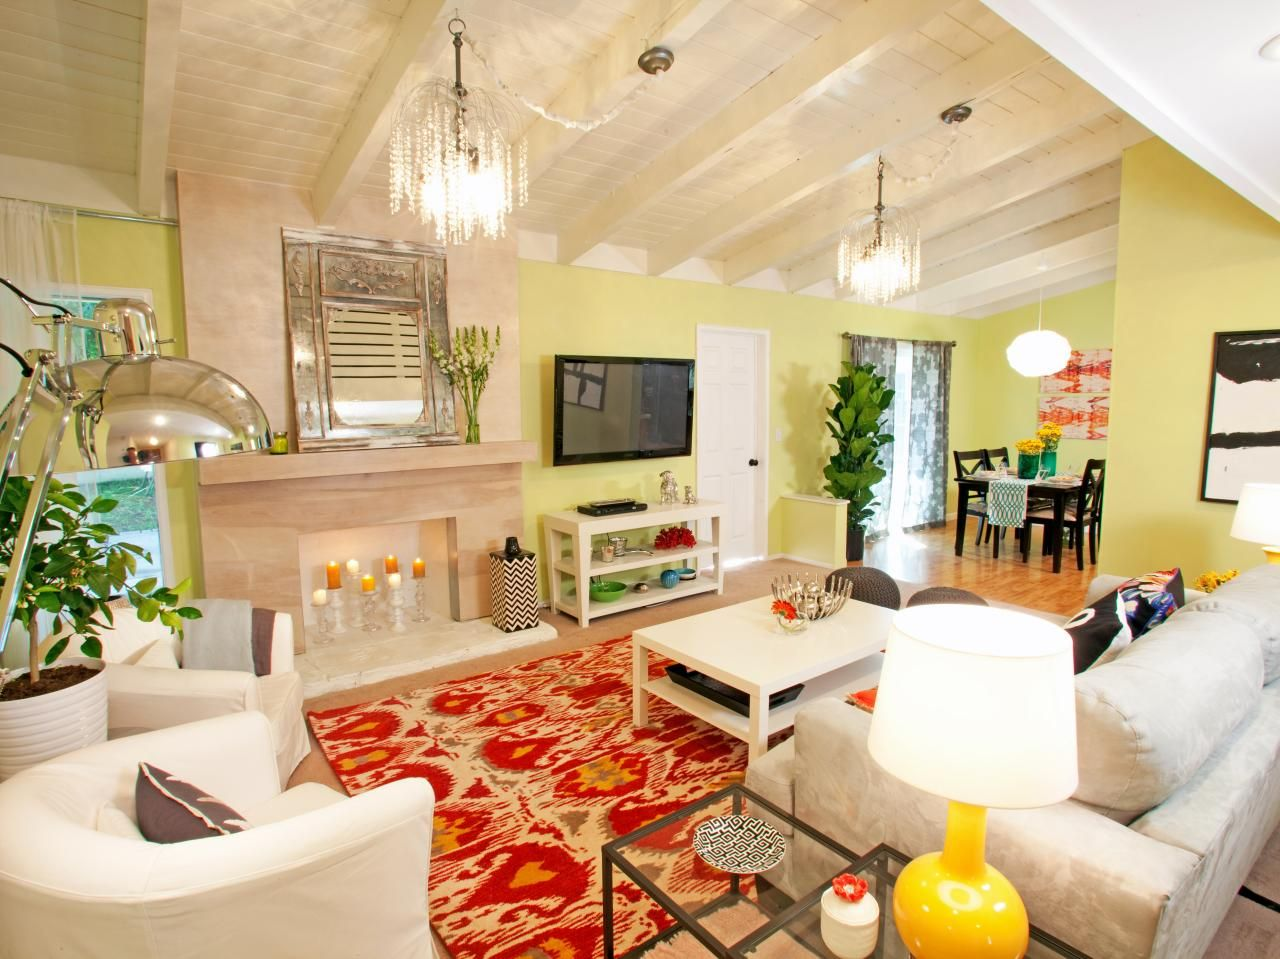 A little color and pattern goes a long way in this living room ...